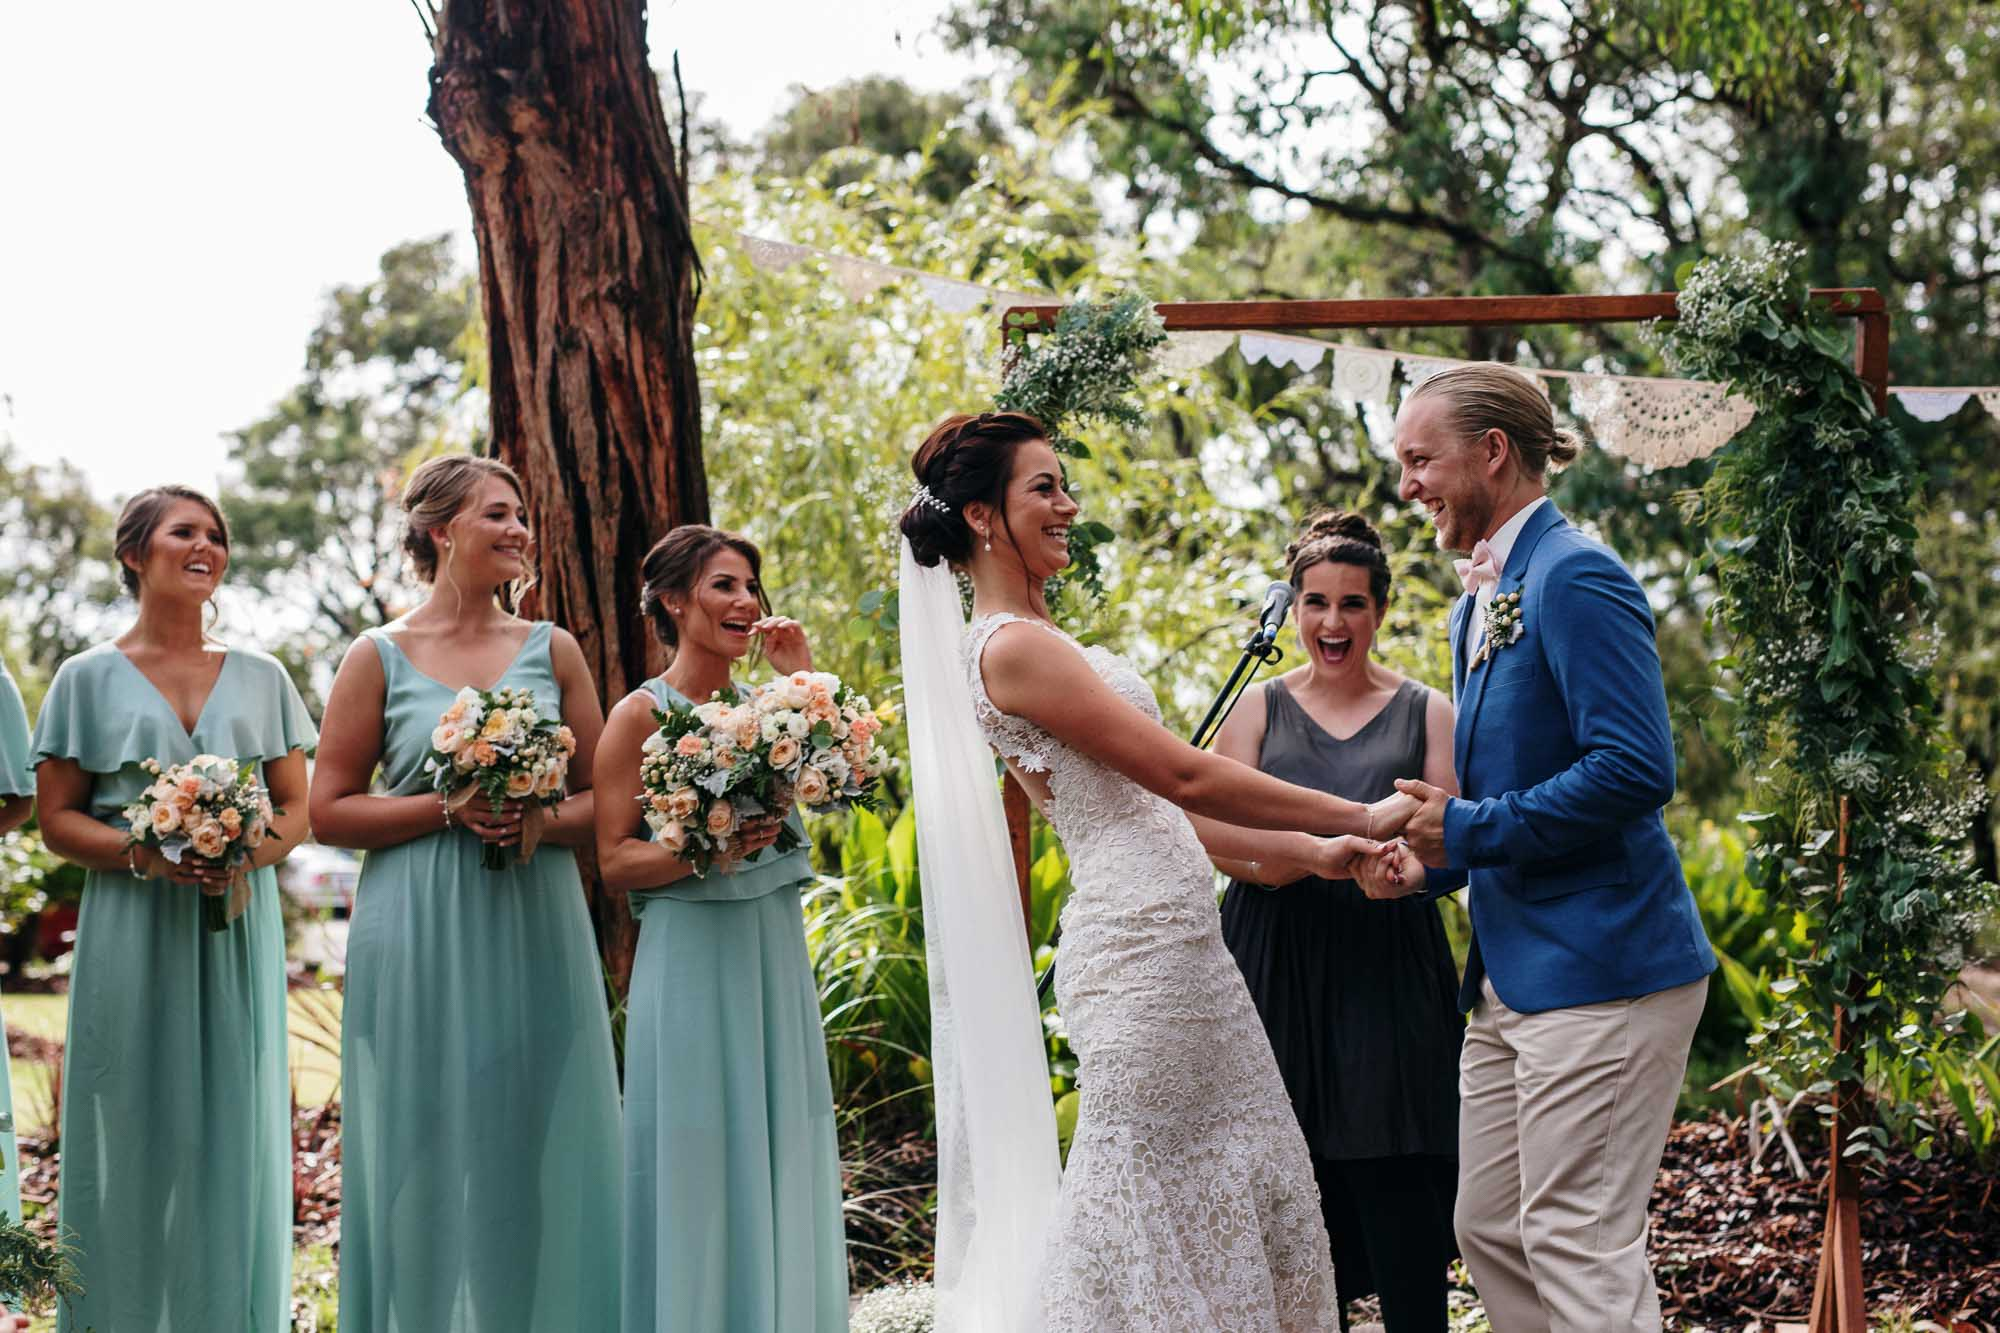 candid-weddinng-photography-melbounre-mornington-peninsula-really-good-weddings-bride-groom251.jpg